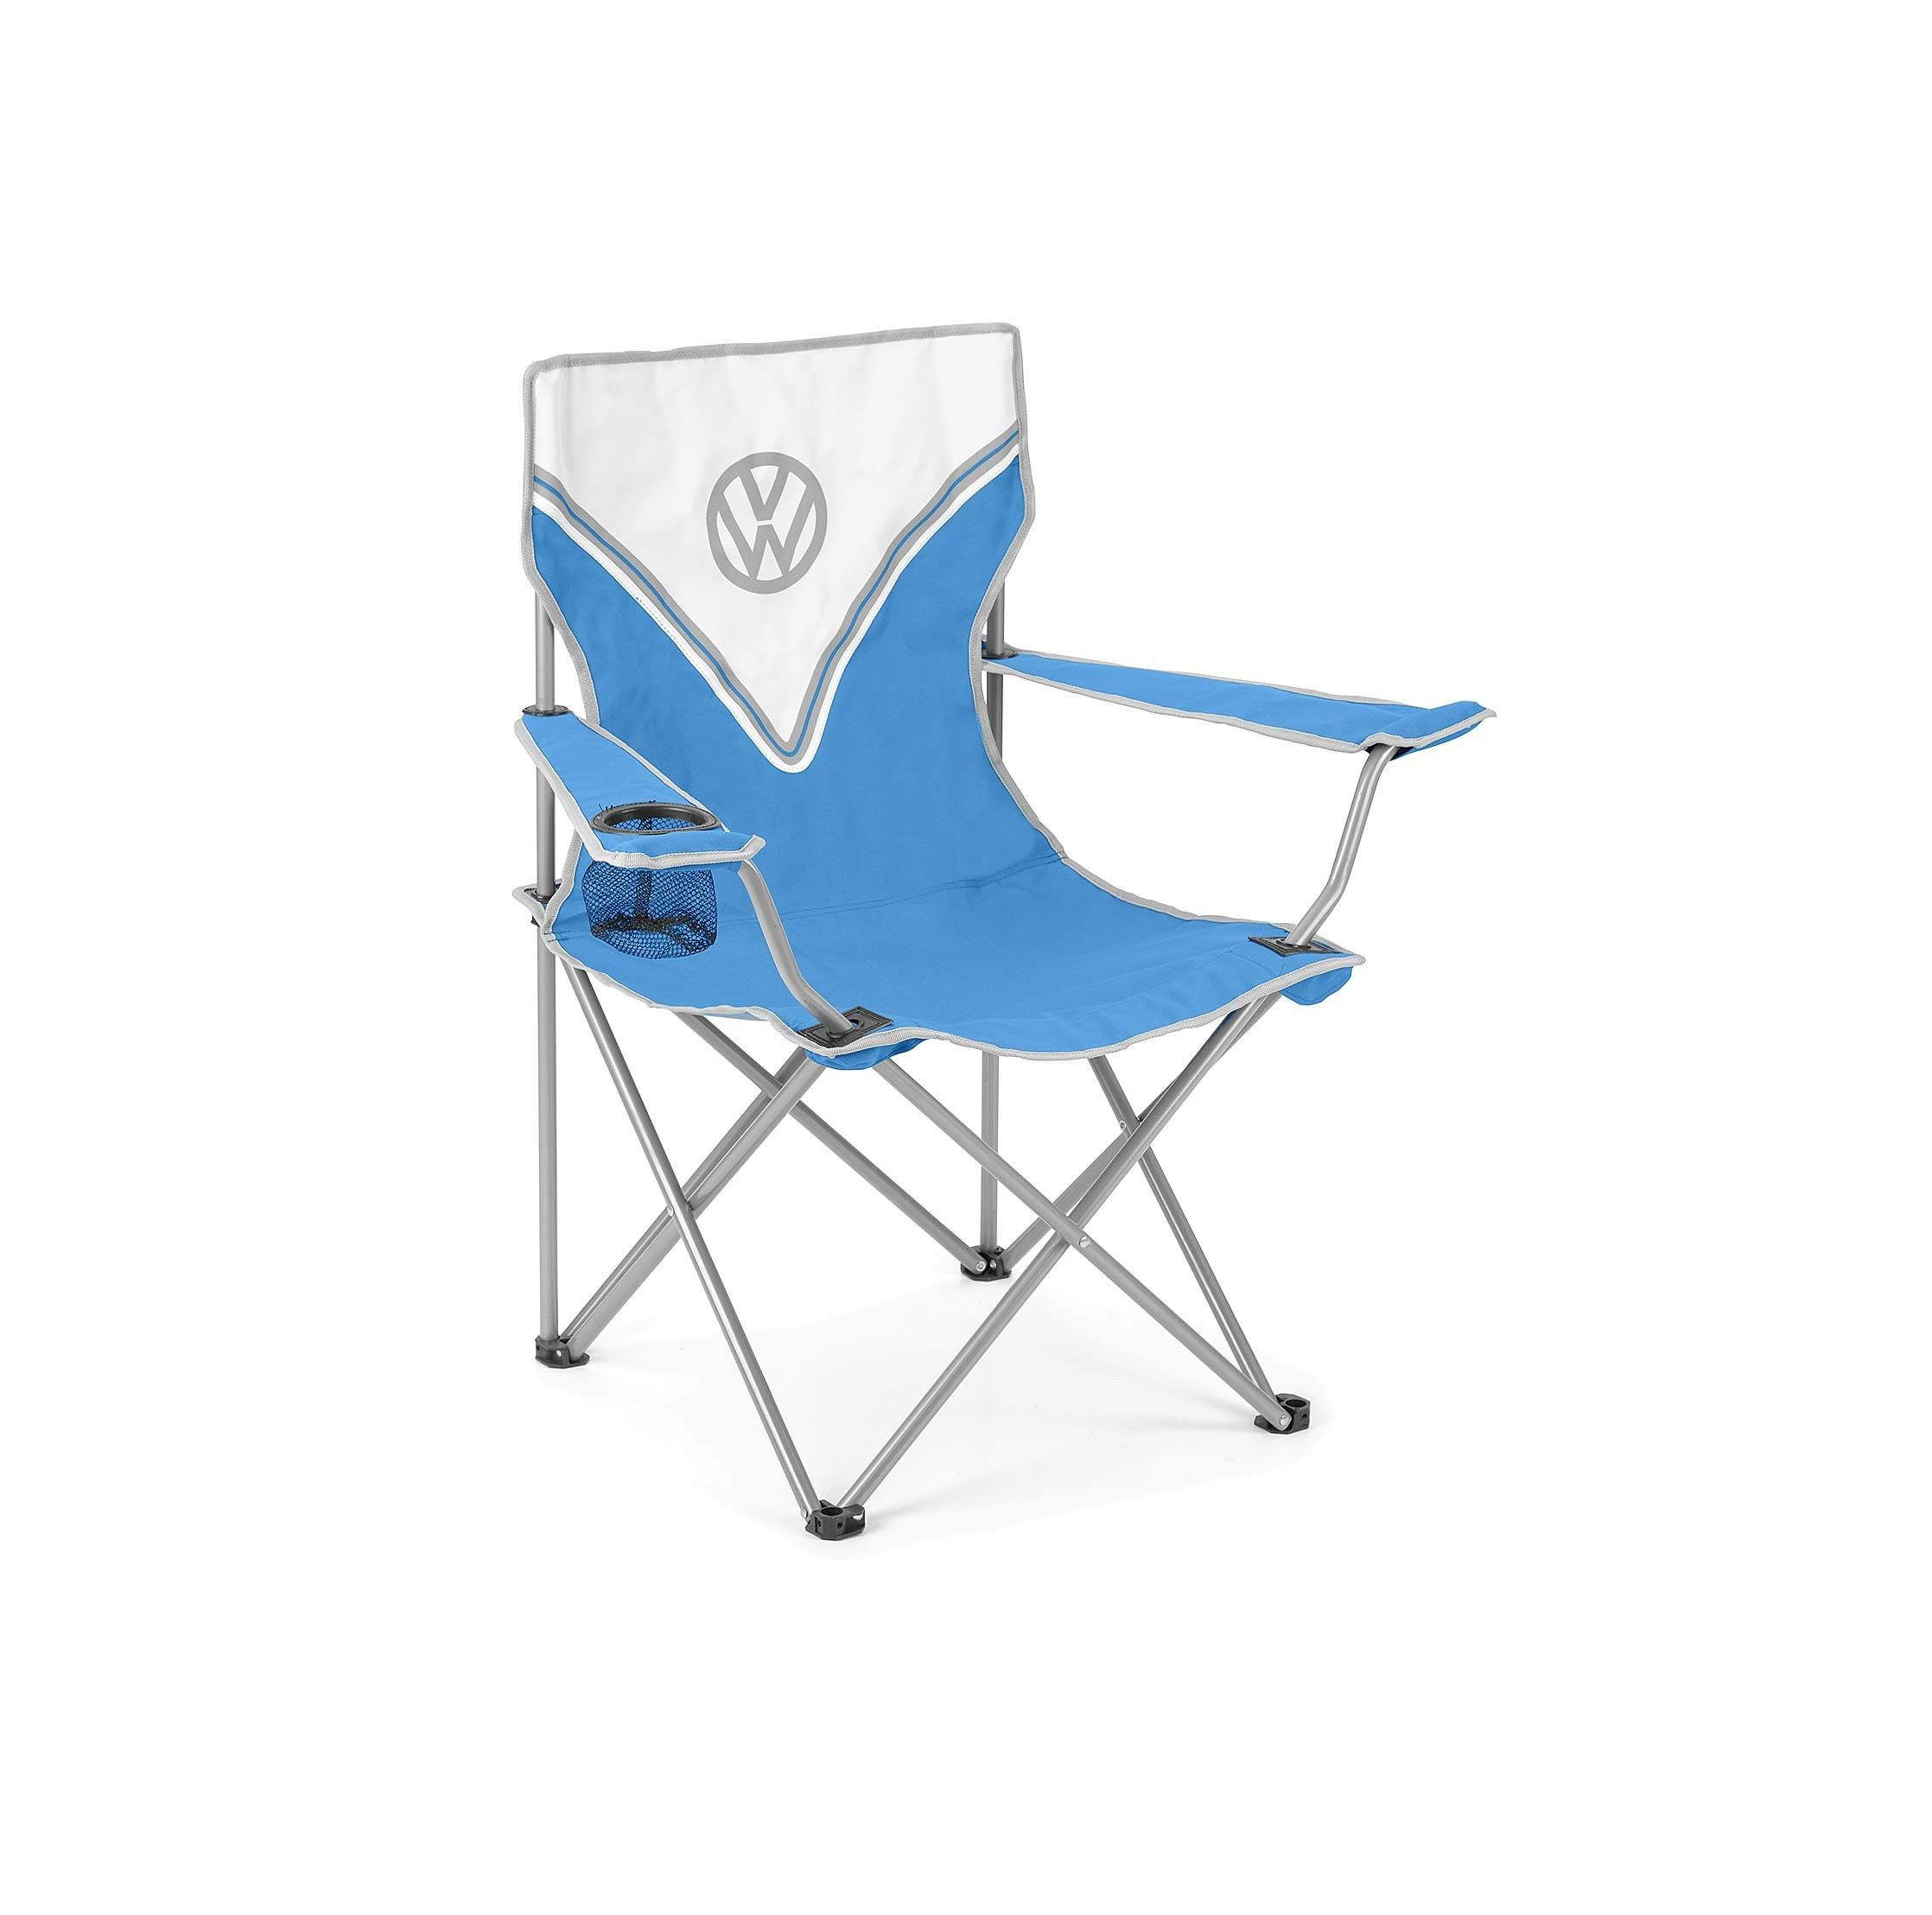 Vw Camping Chair Blue 2